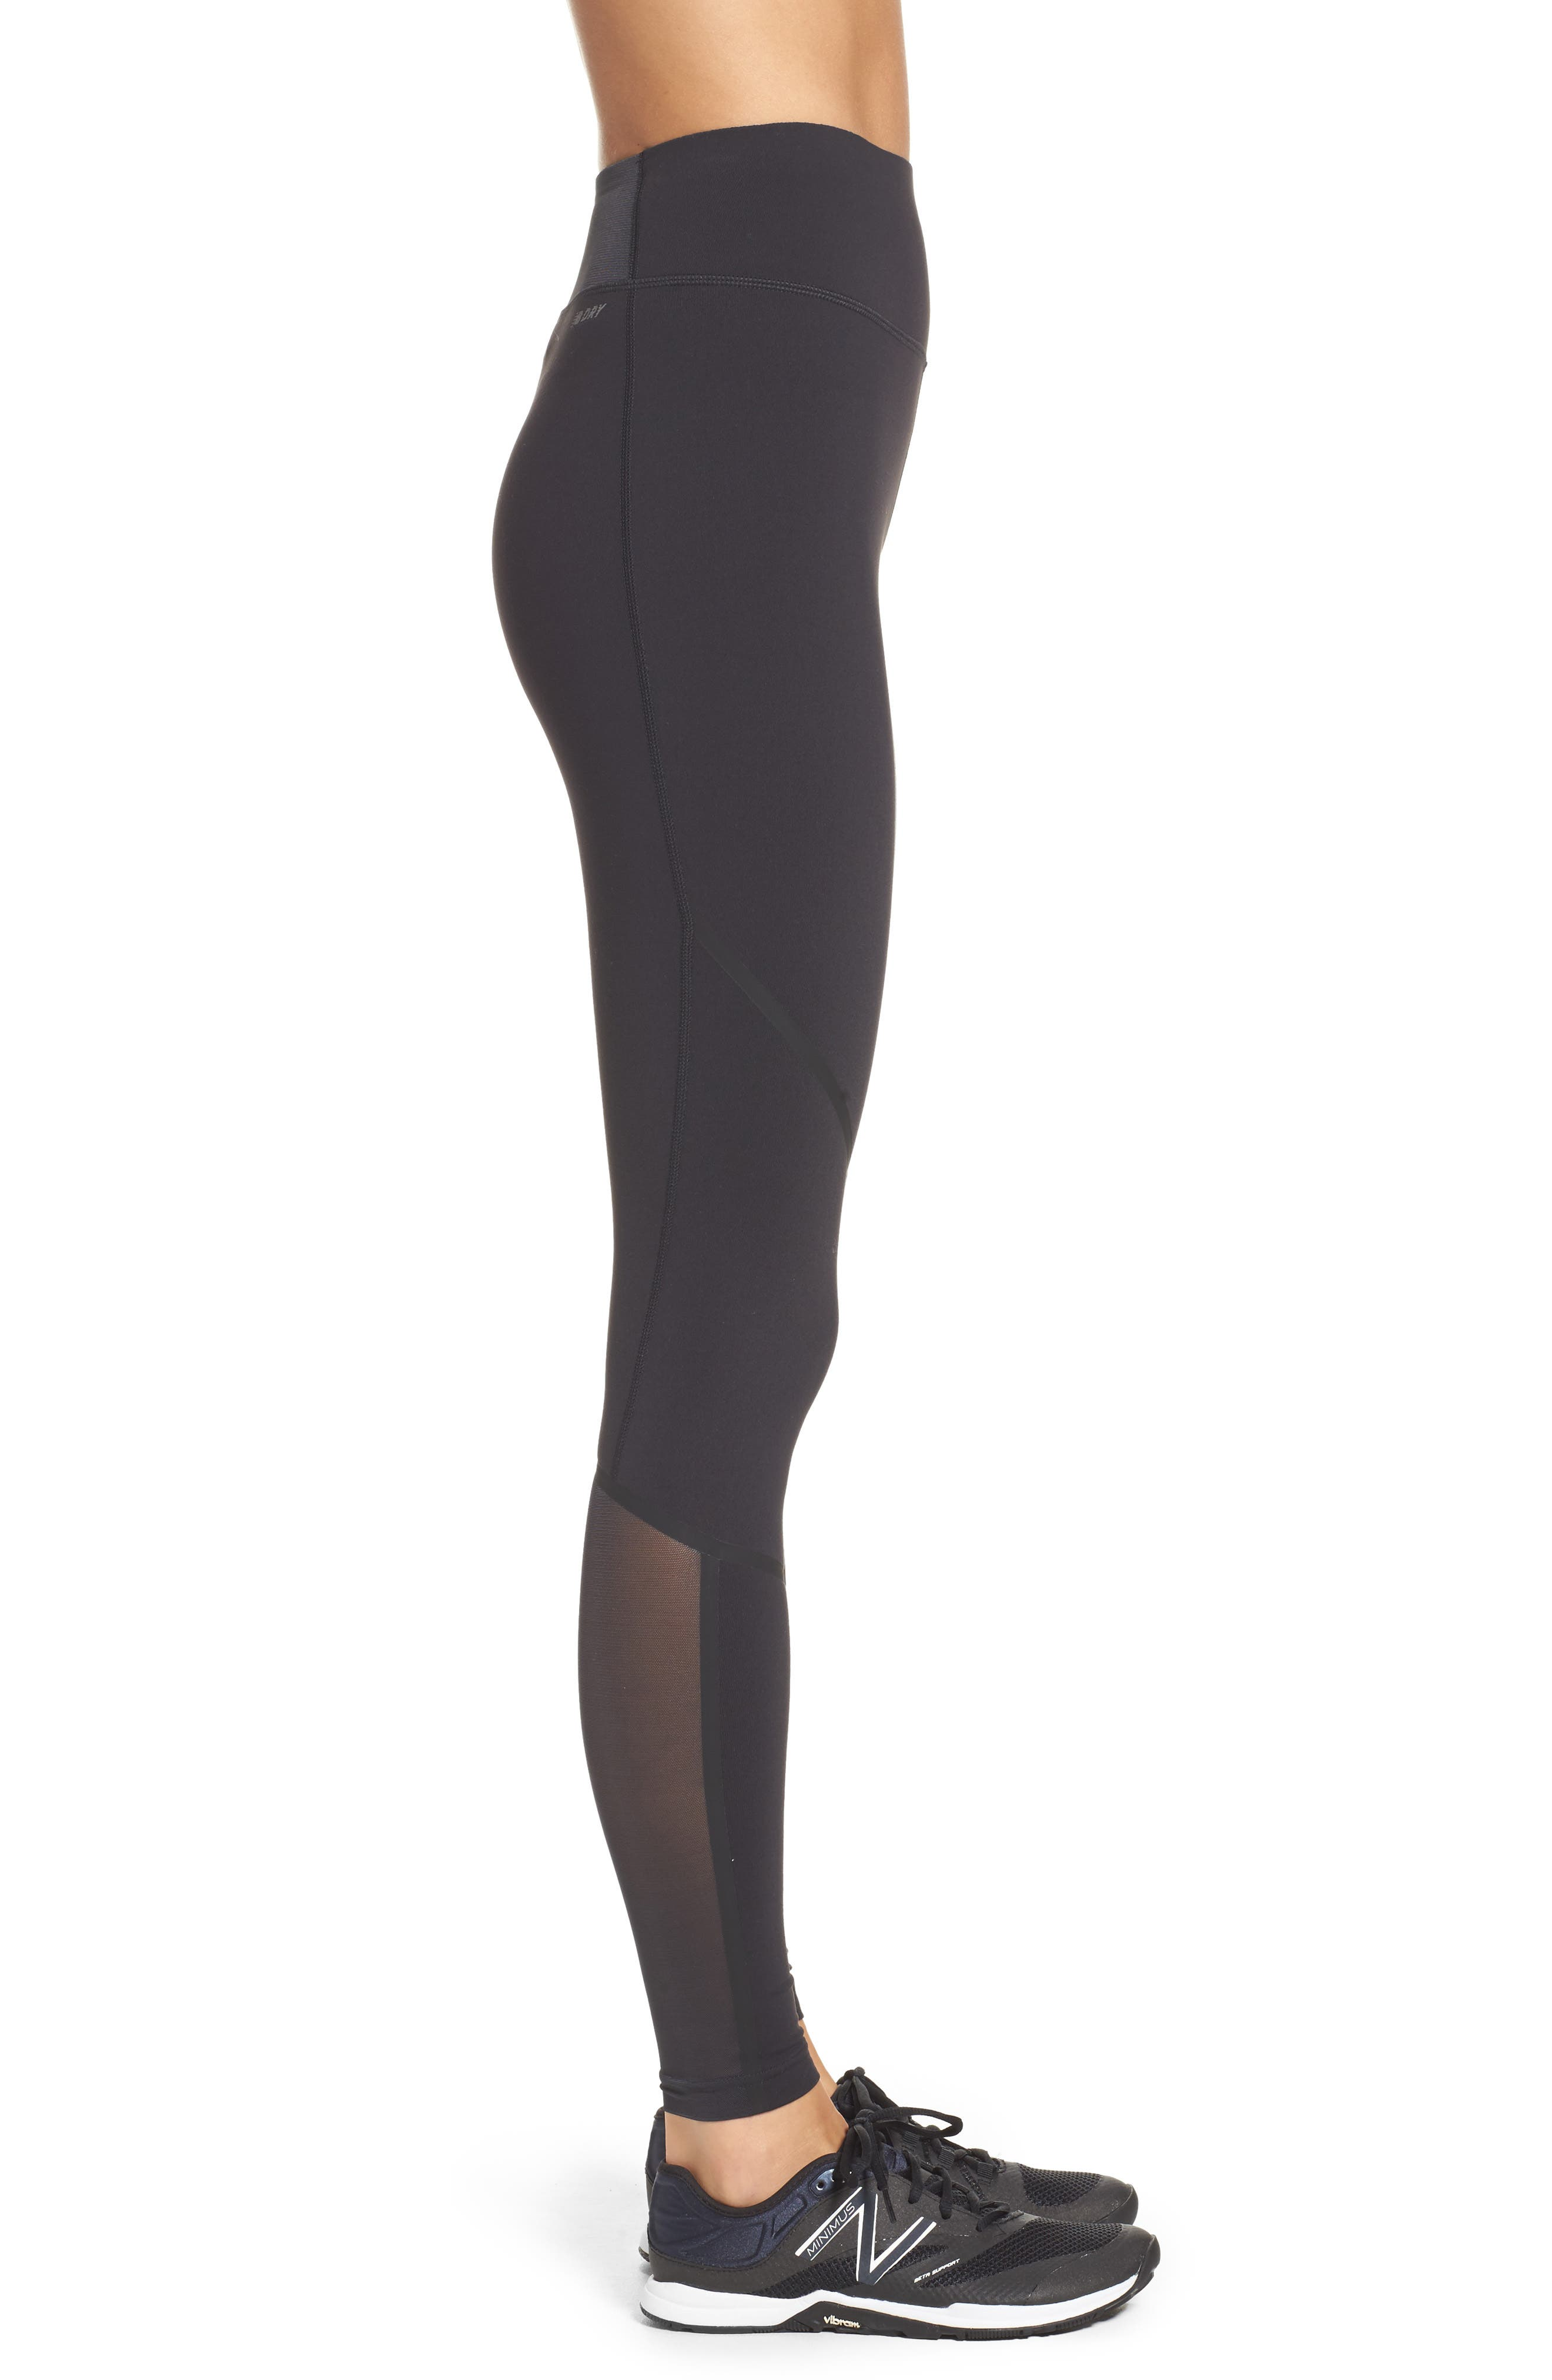 Intensity Tights,                             Alternate thumbnail 3, color,                             001